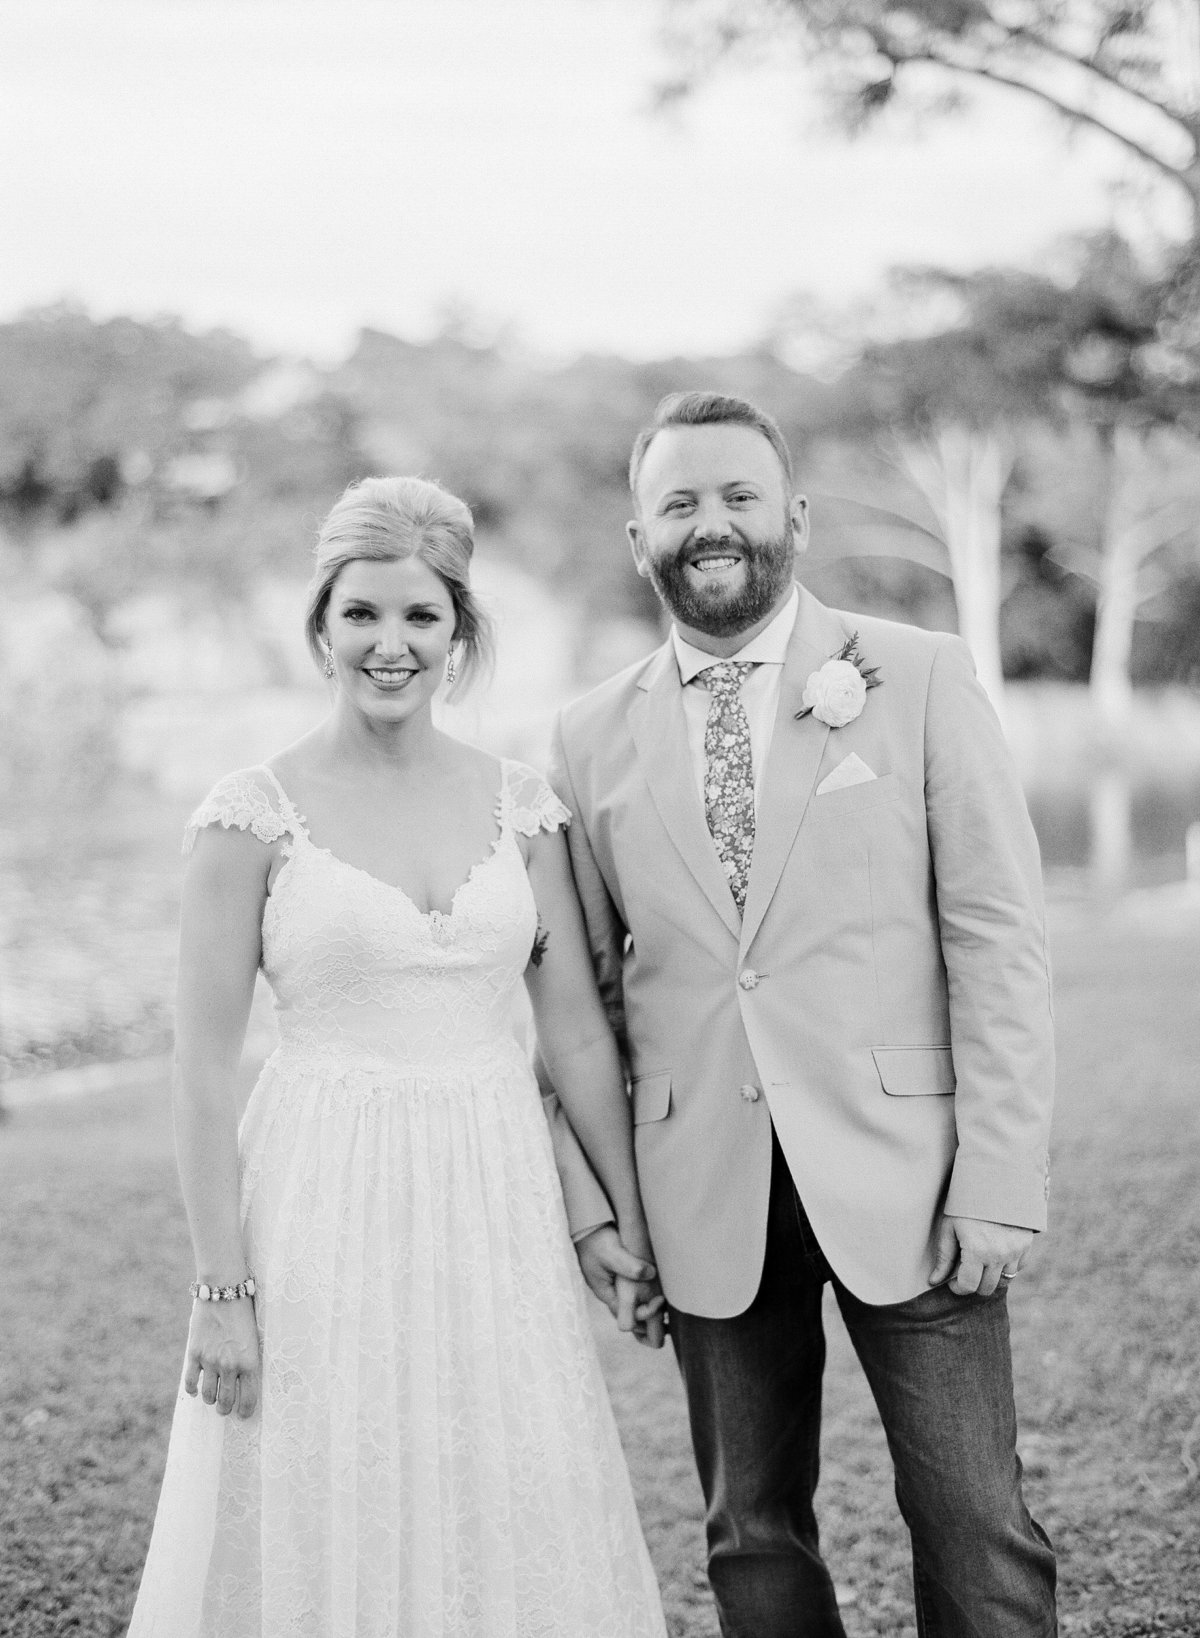 GRANT CANDICE WED 2016-0388